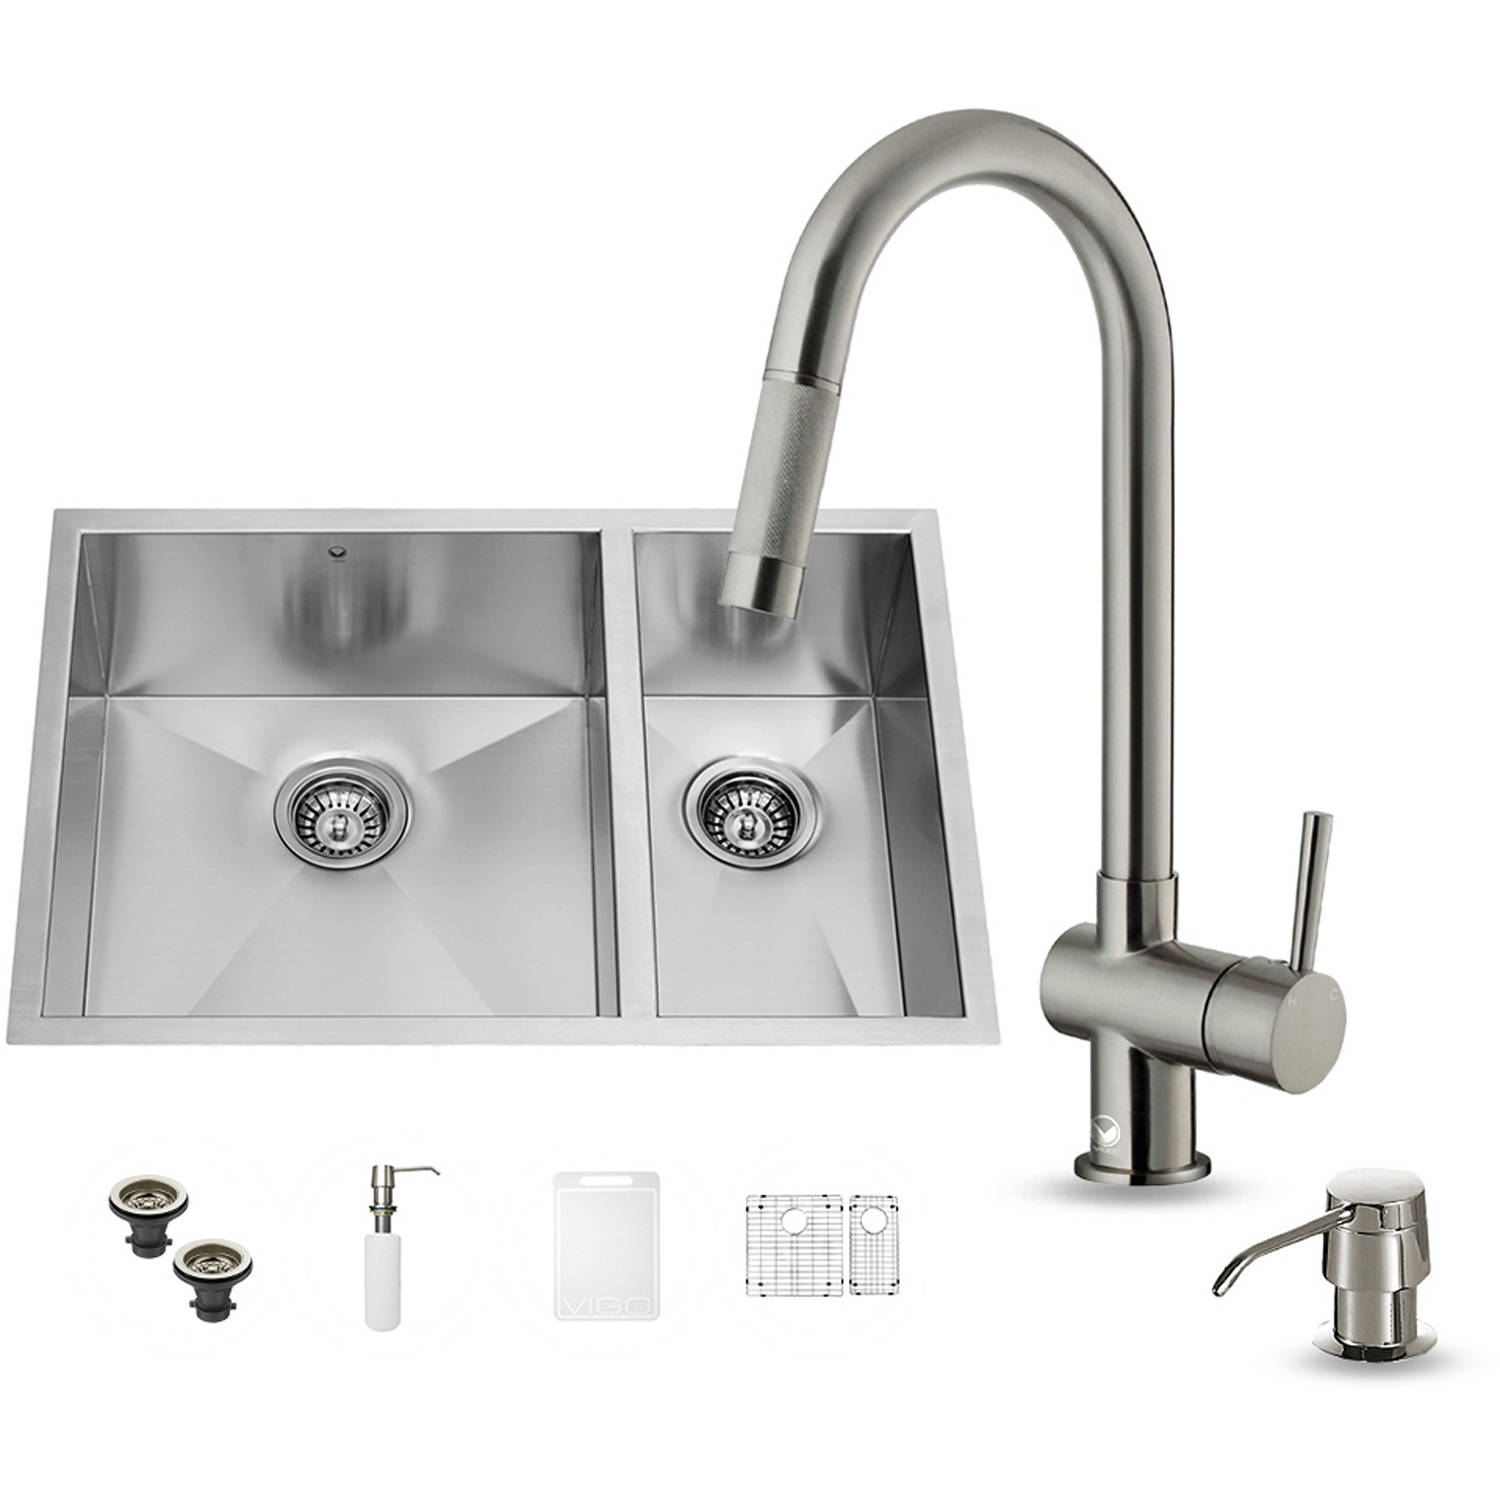 """Vigo All-in-One 29"""" Undermount Stainless Steel Double Bowl Kitchen Sink and Faucet Set"""